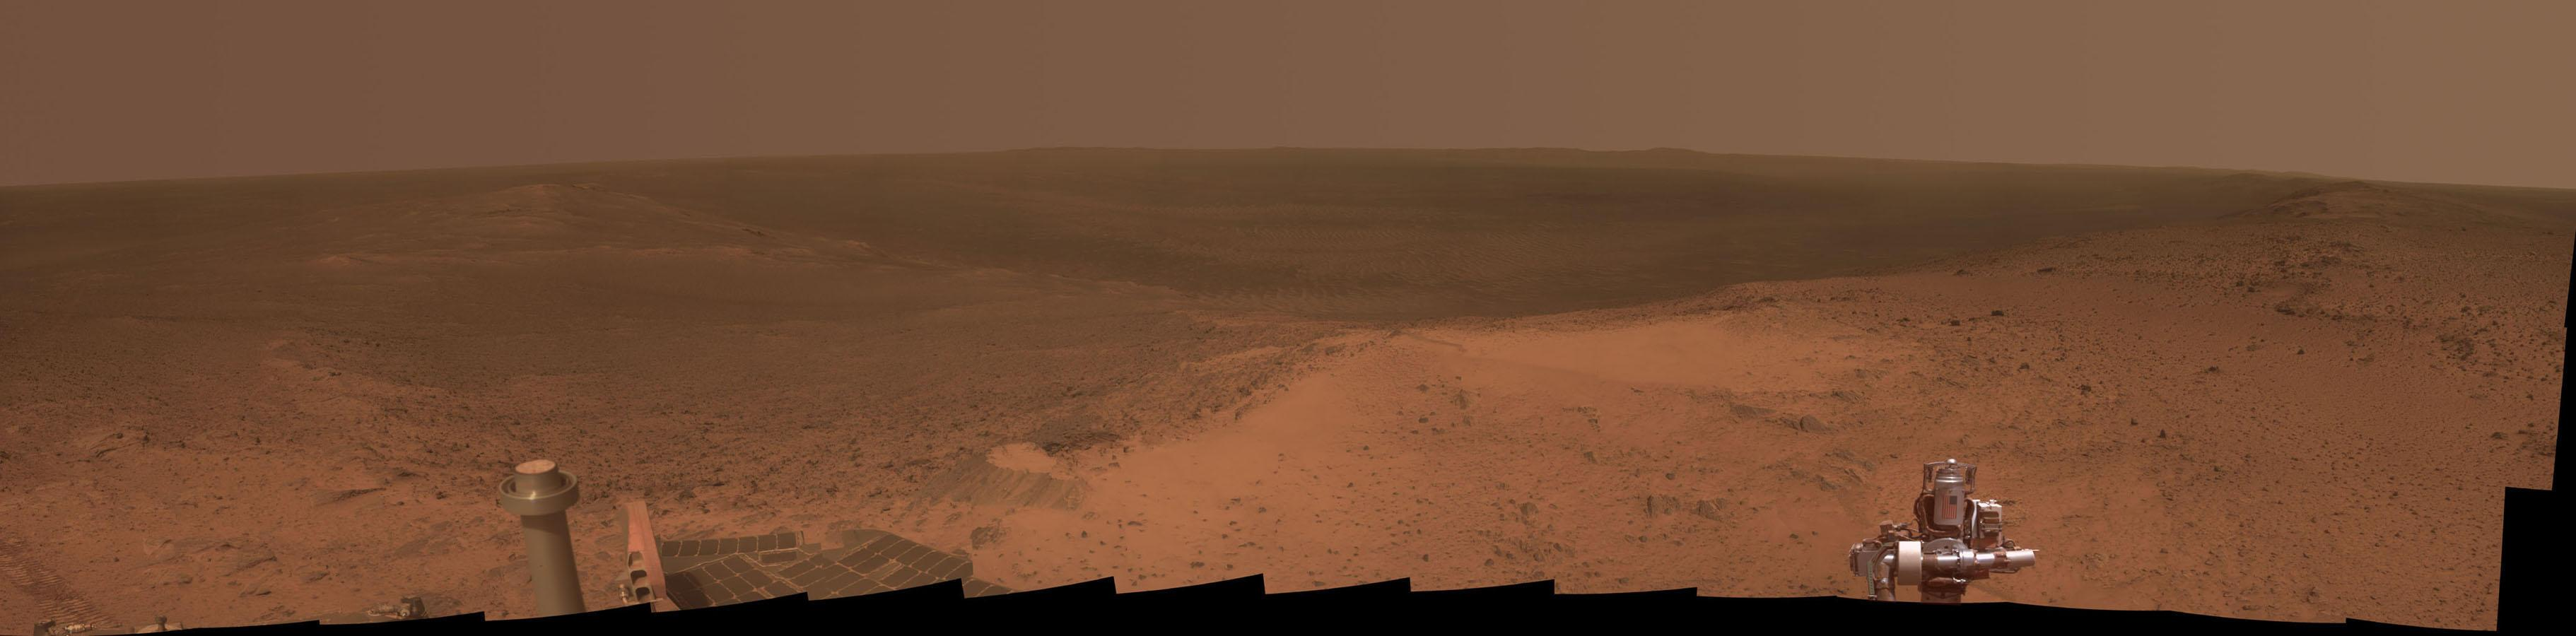 Mars rover reaches highest point in 7 years, snaps this panorama